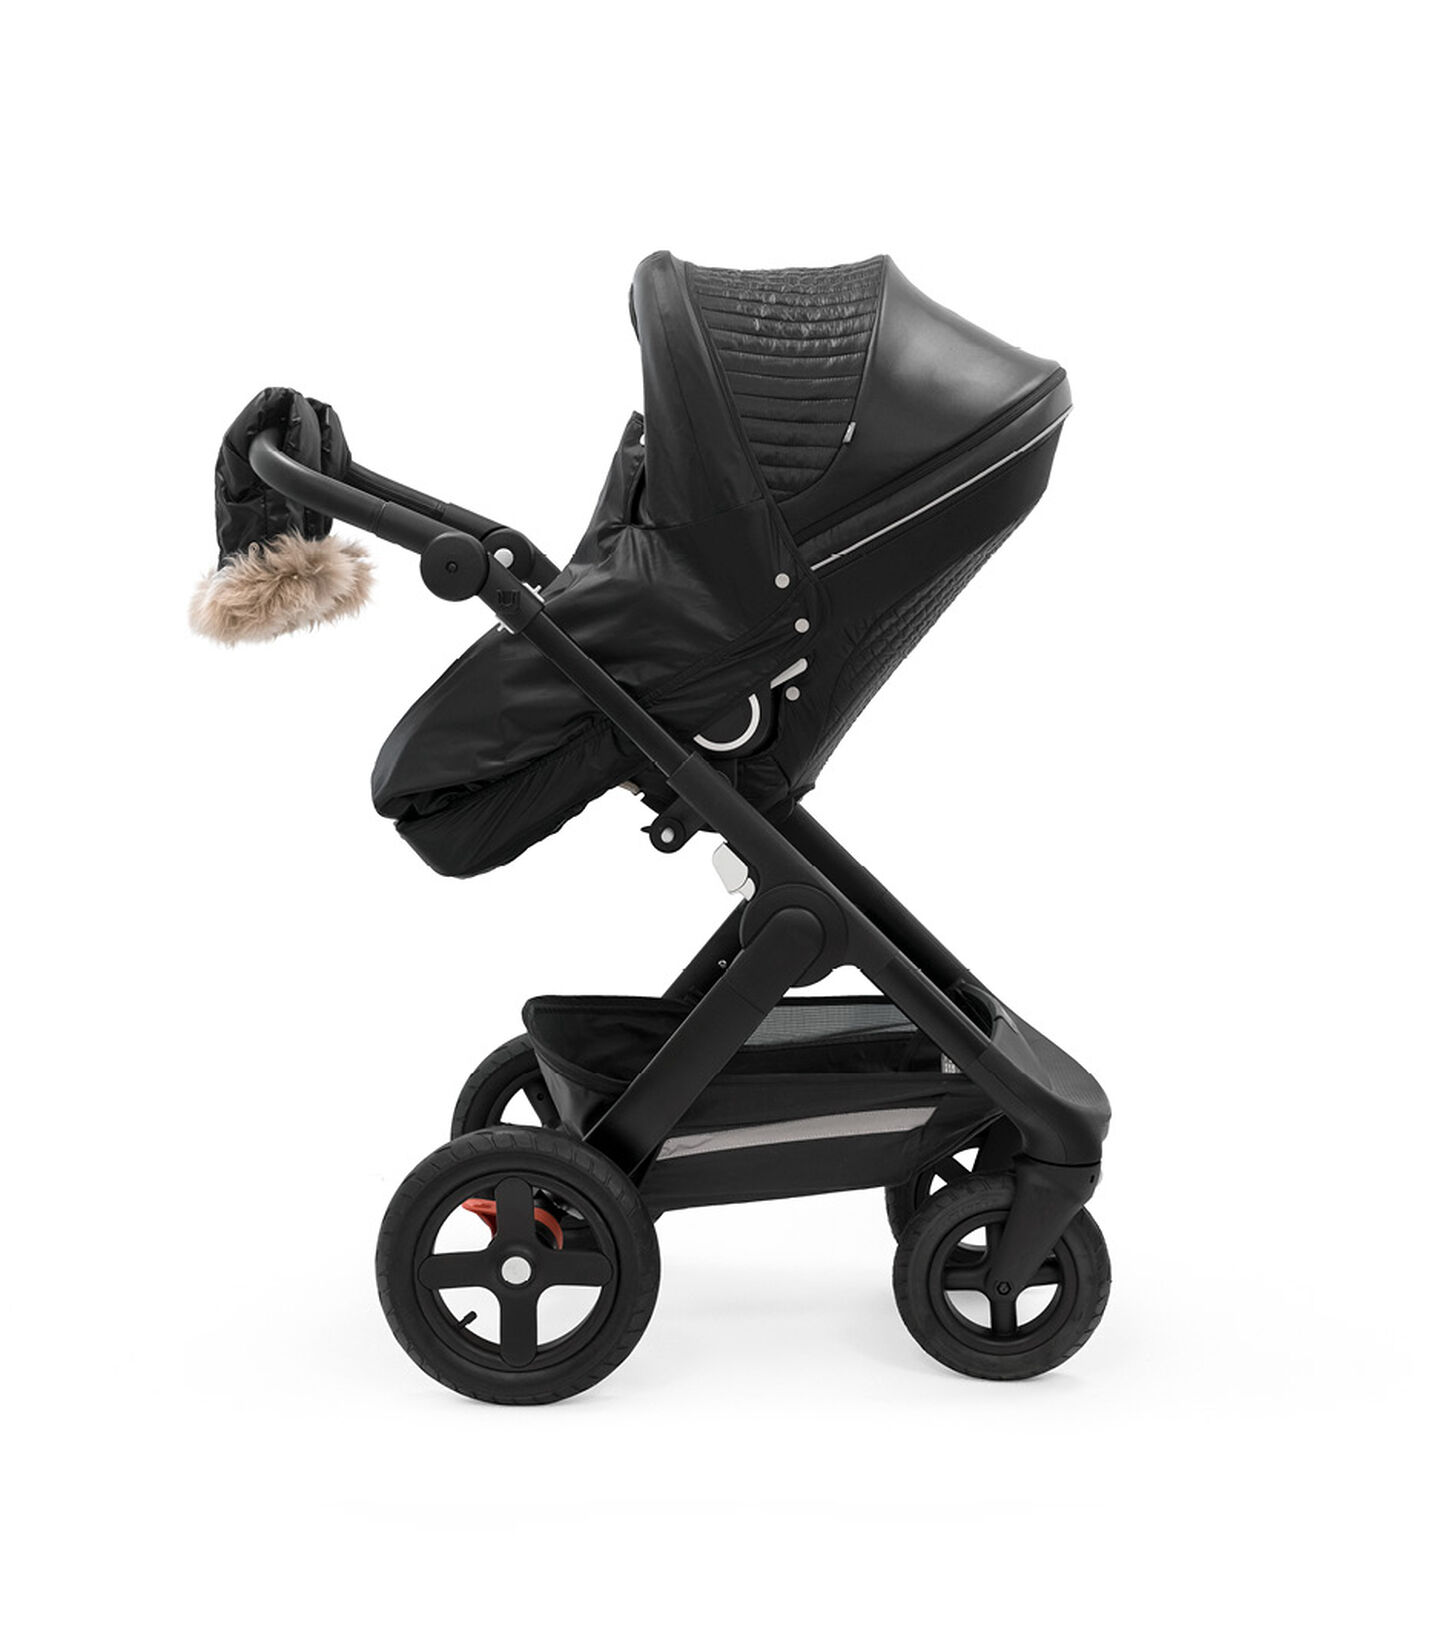 Stokke® Stroller Winter Kit Onyx Black, Onyx Black, mainview view 2